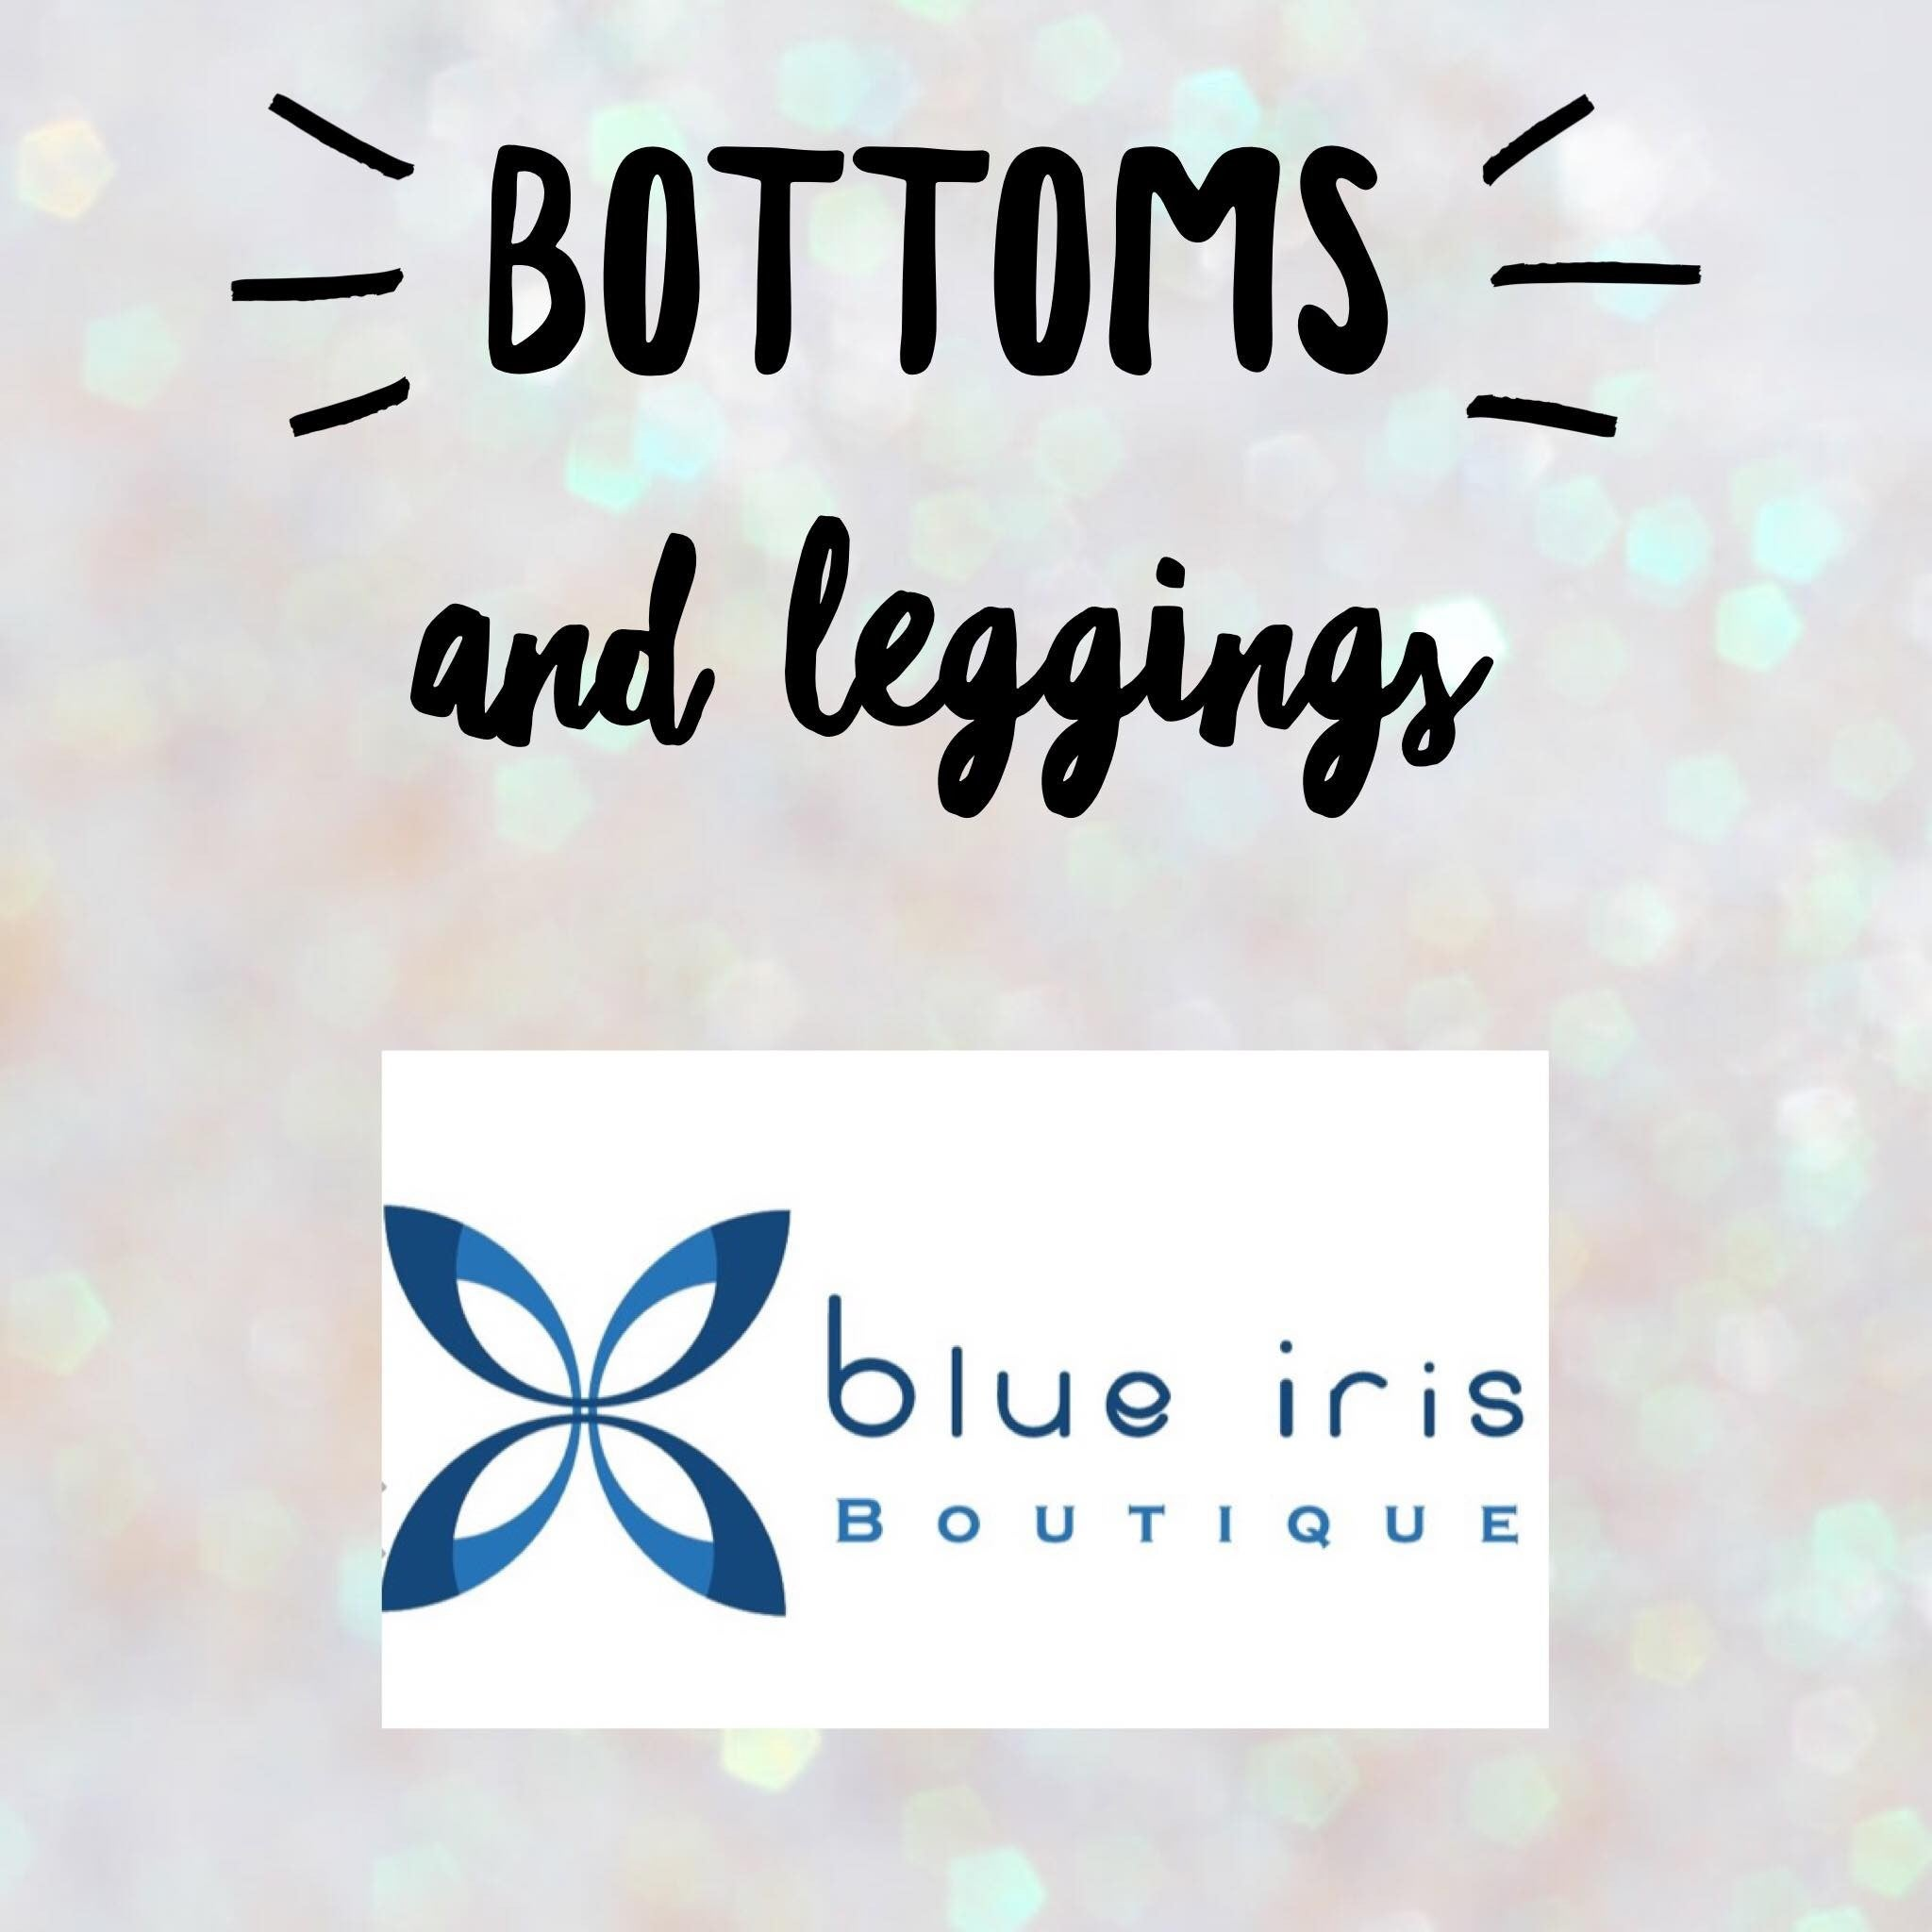 Bottoms and Leggings